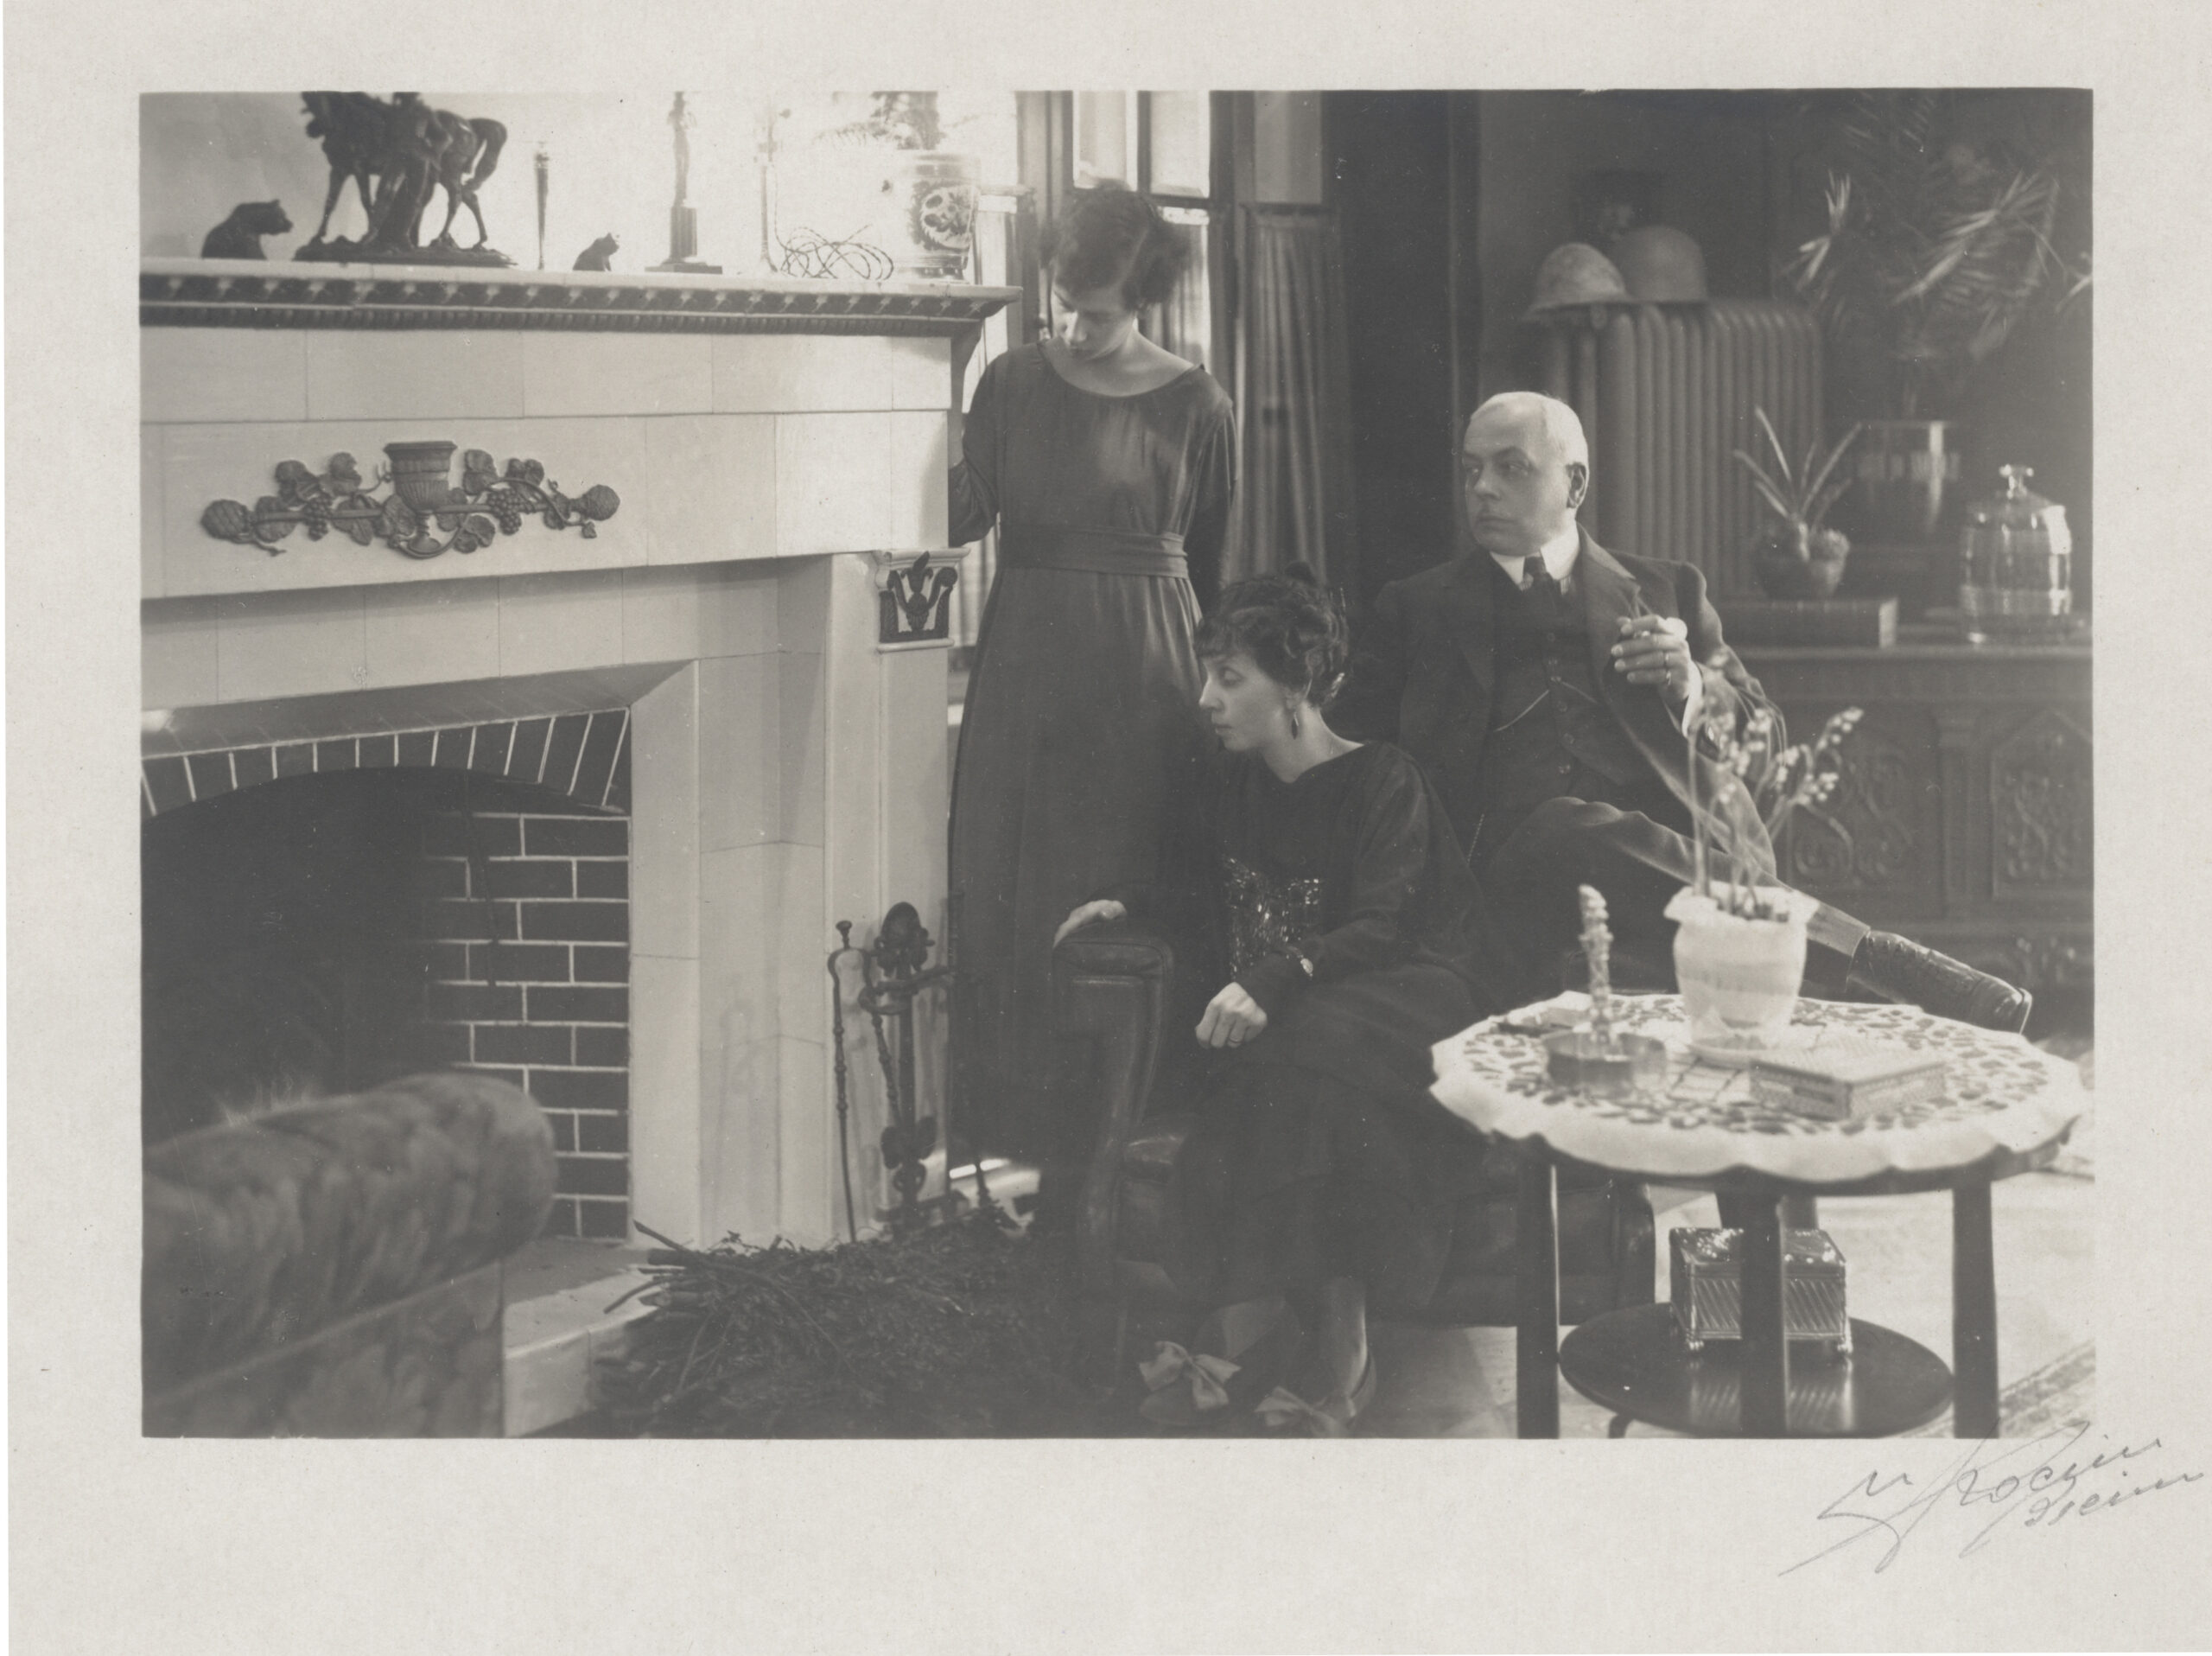 Charles-Auguste Heuer and his family